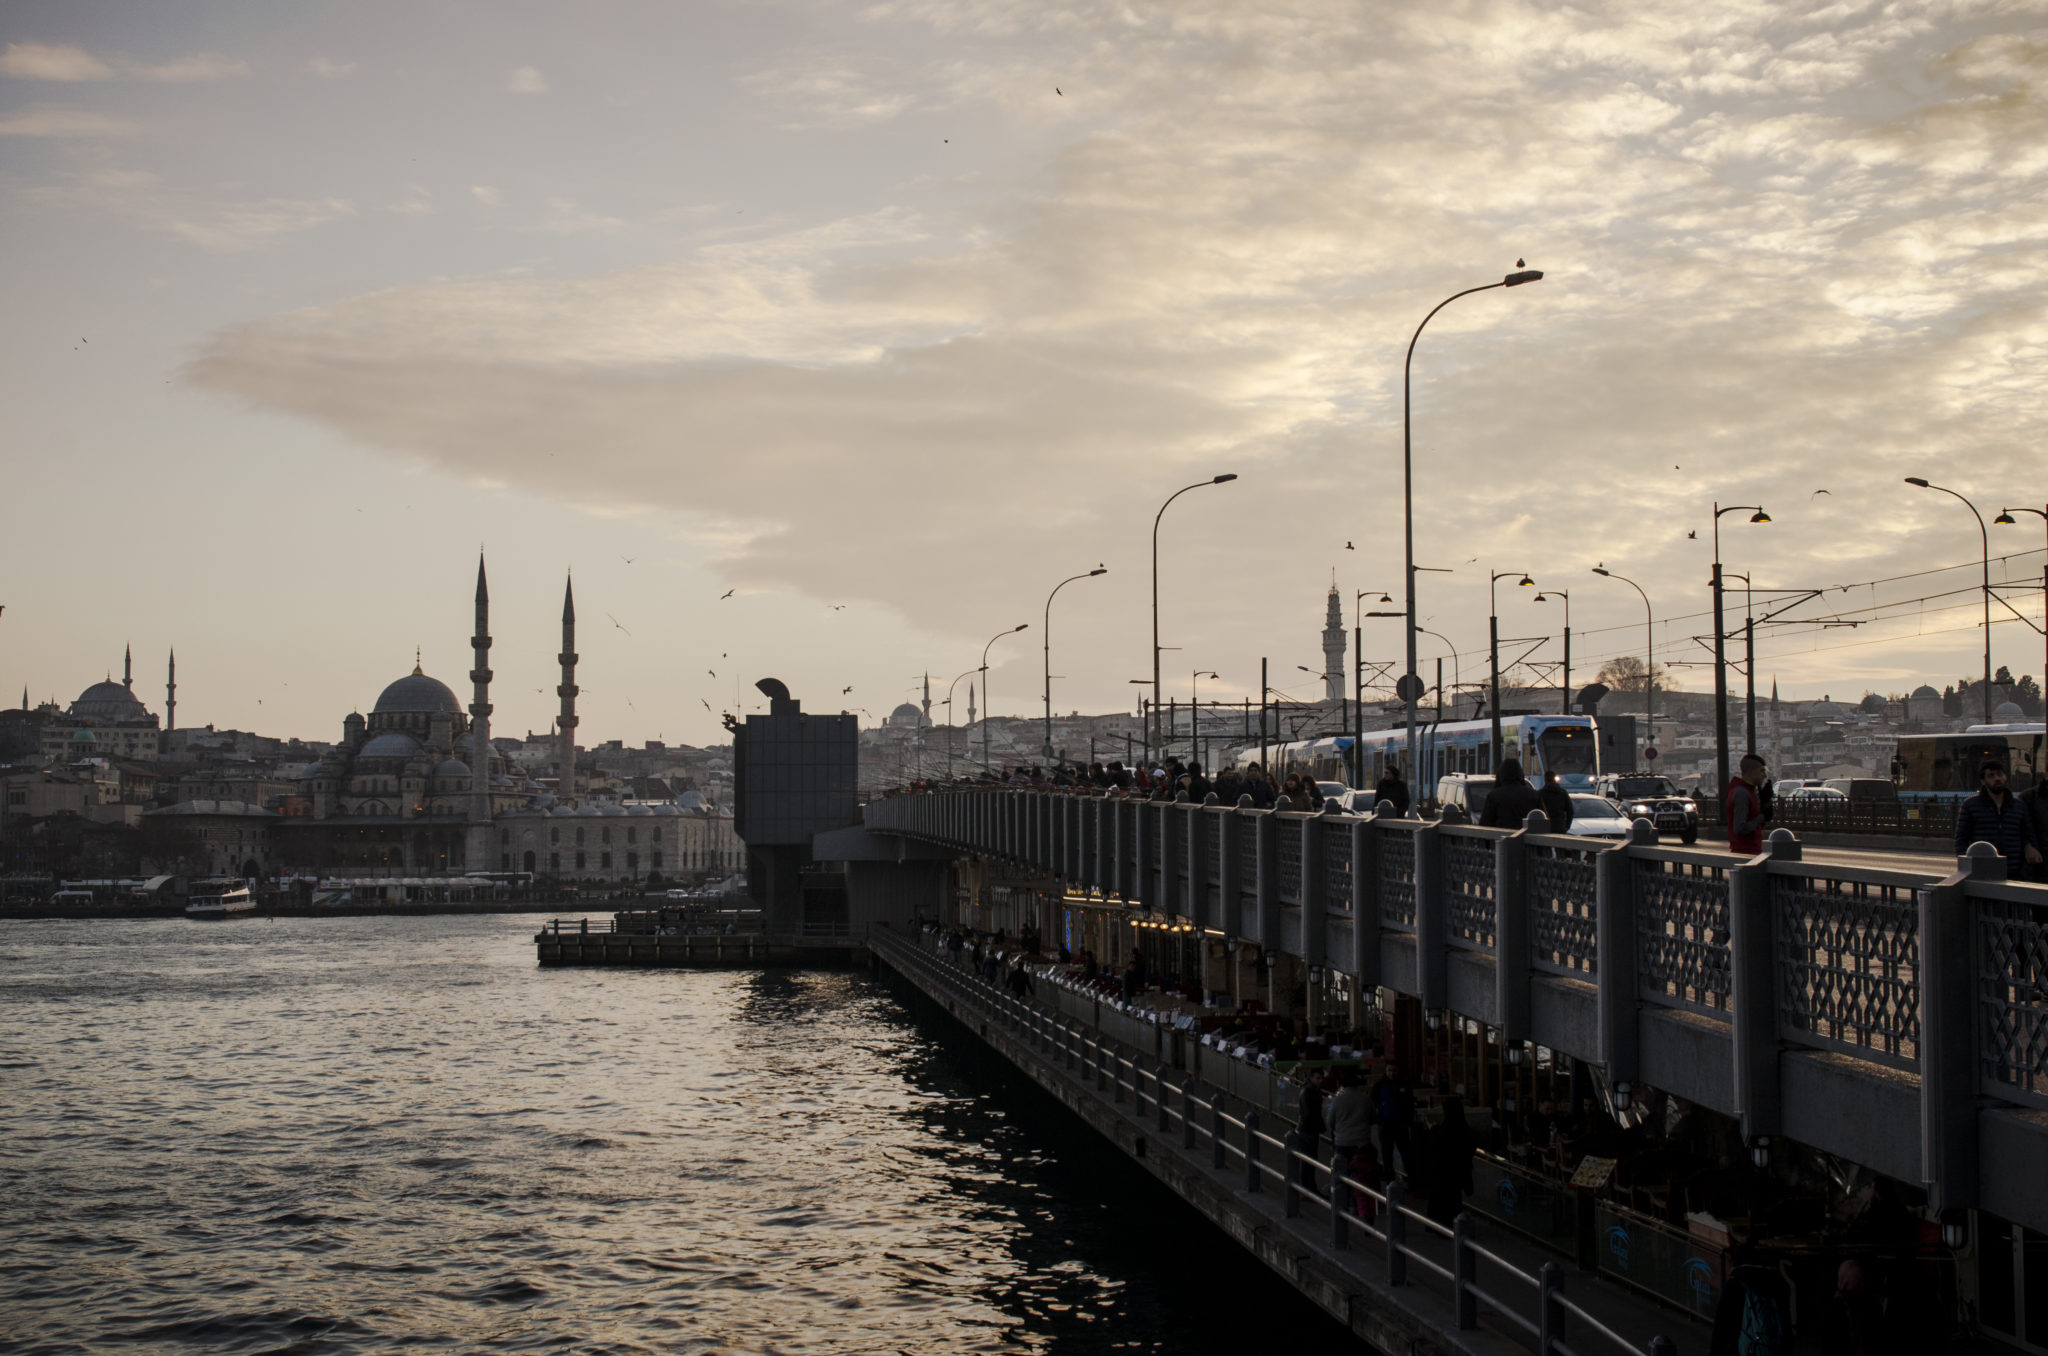 Things-to-do-in-Turkey-Galata-Bridge-Istanbul